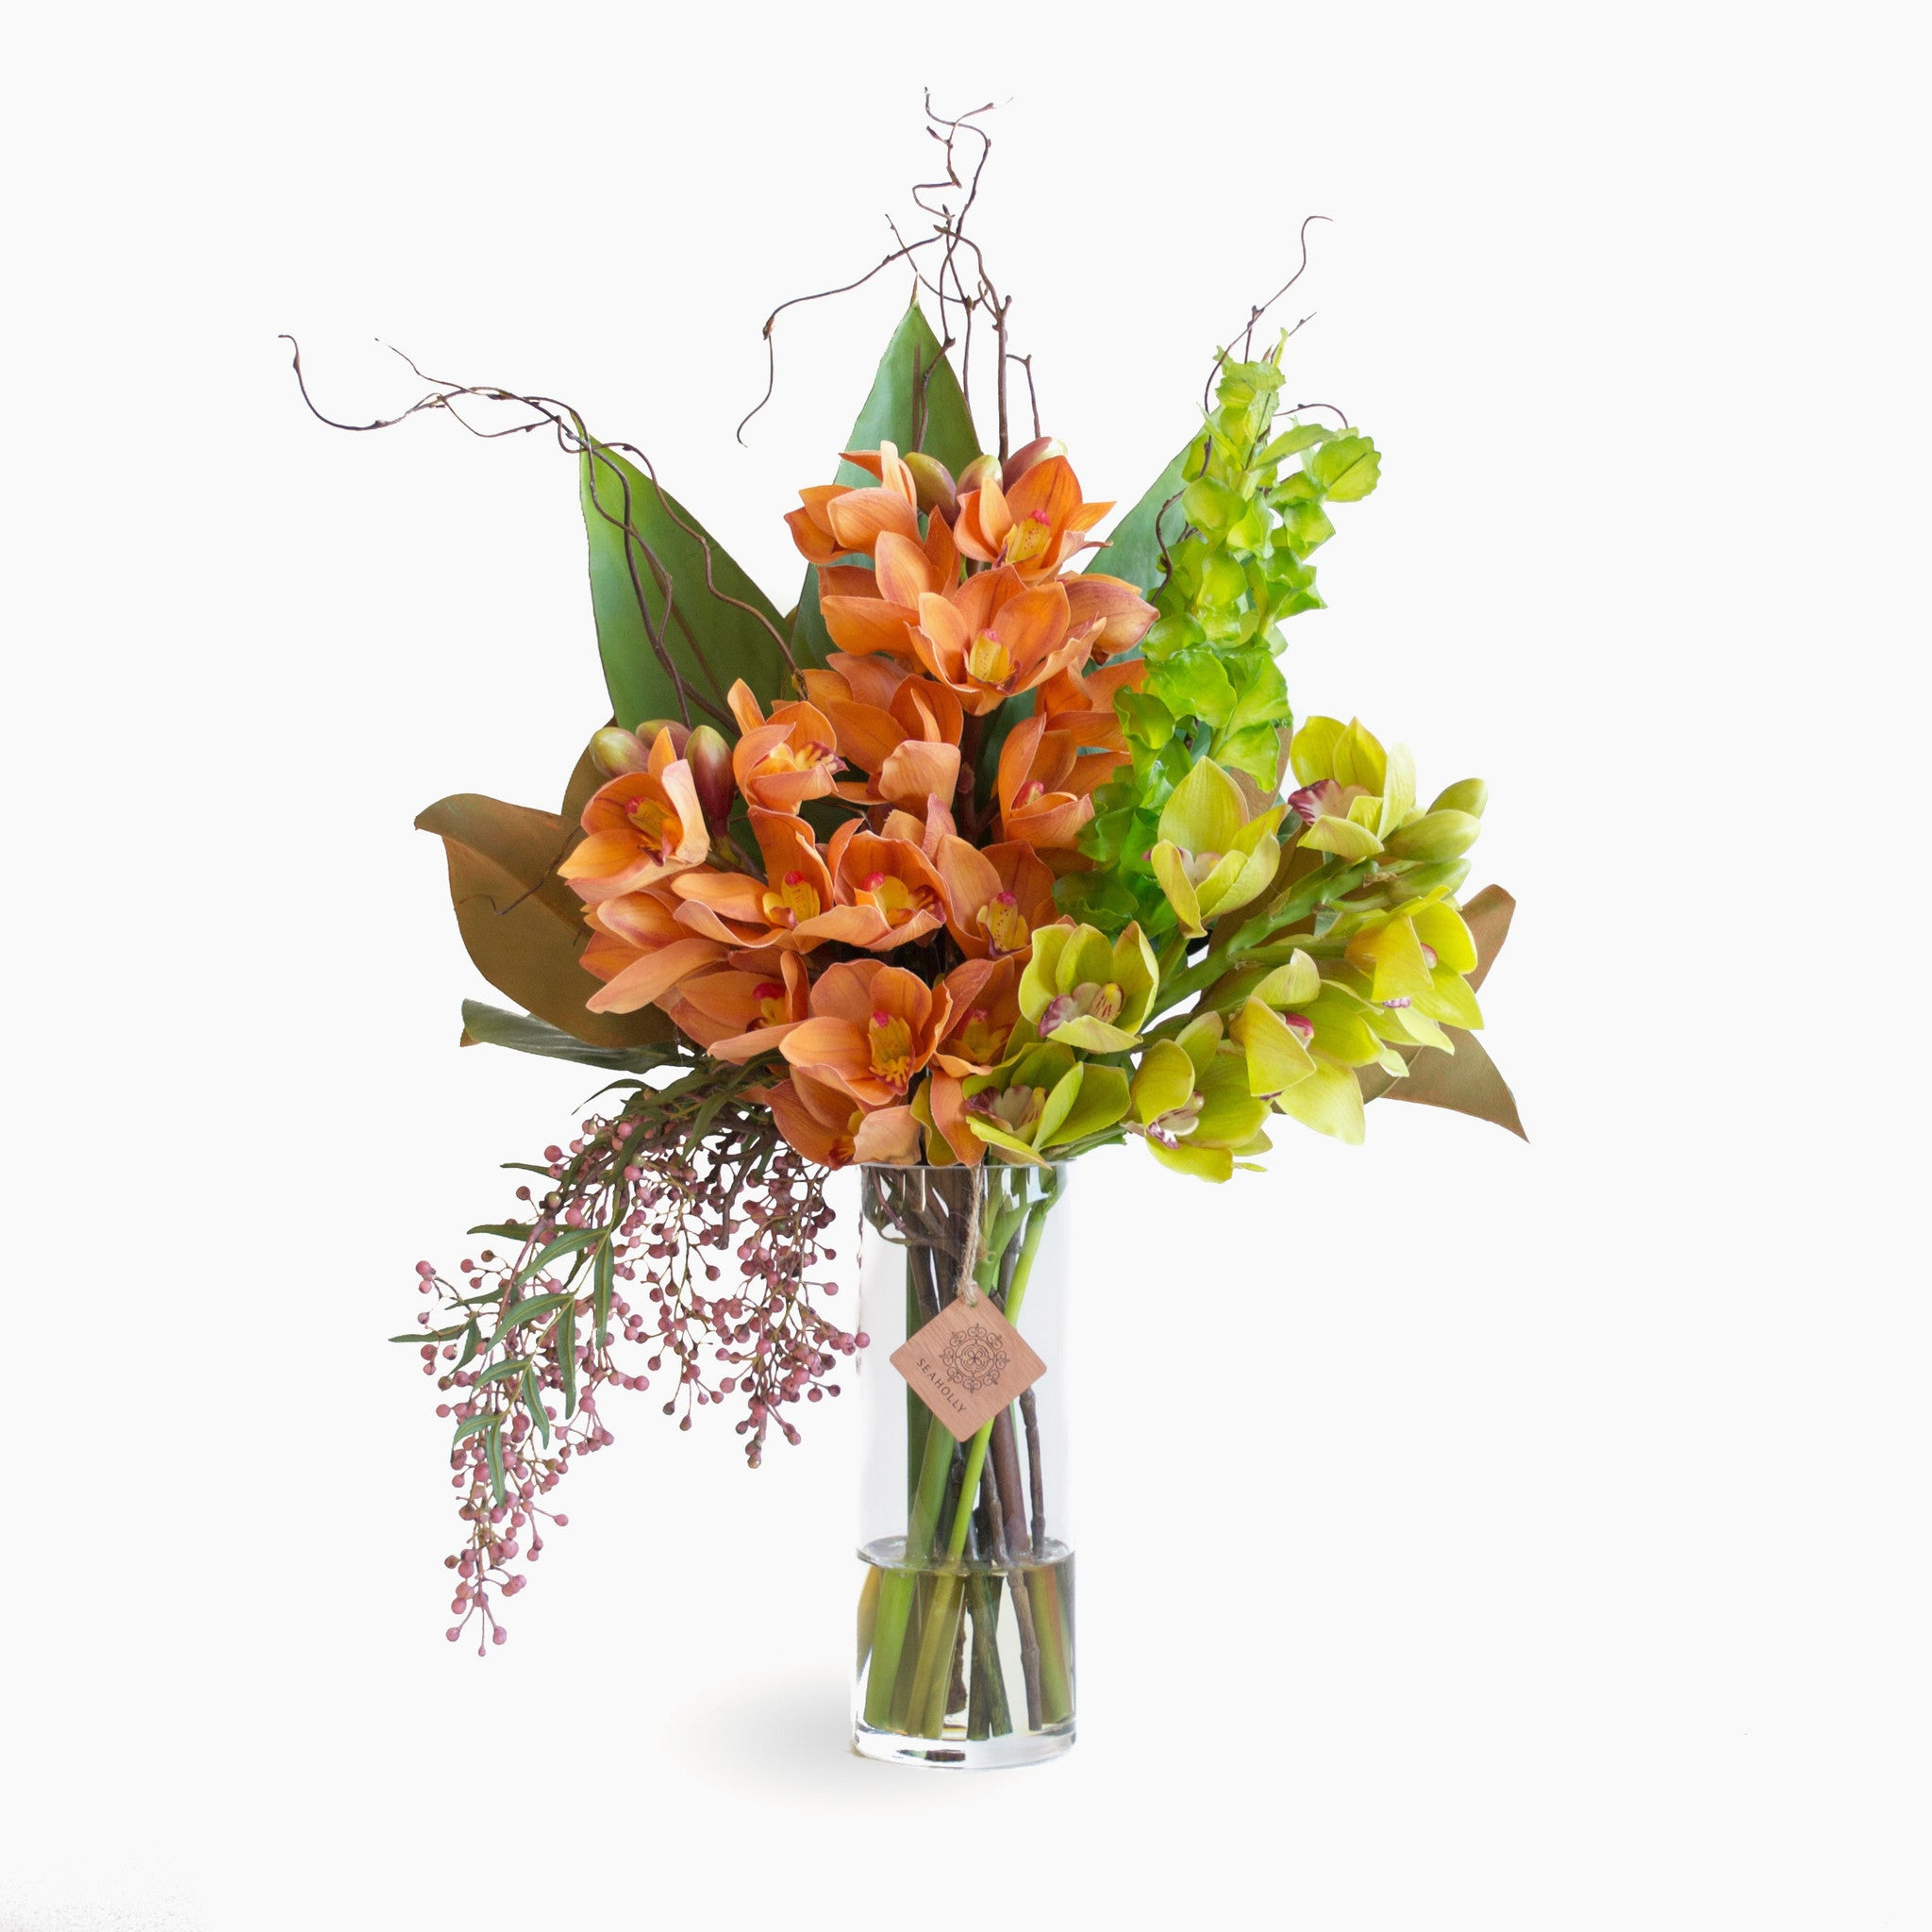 Orange and green cymbidium orchid